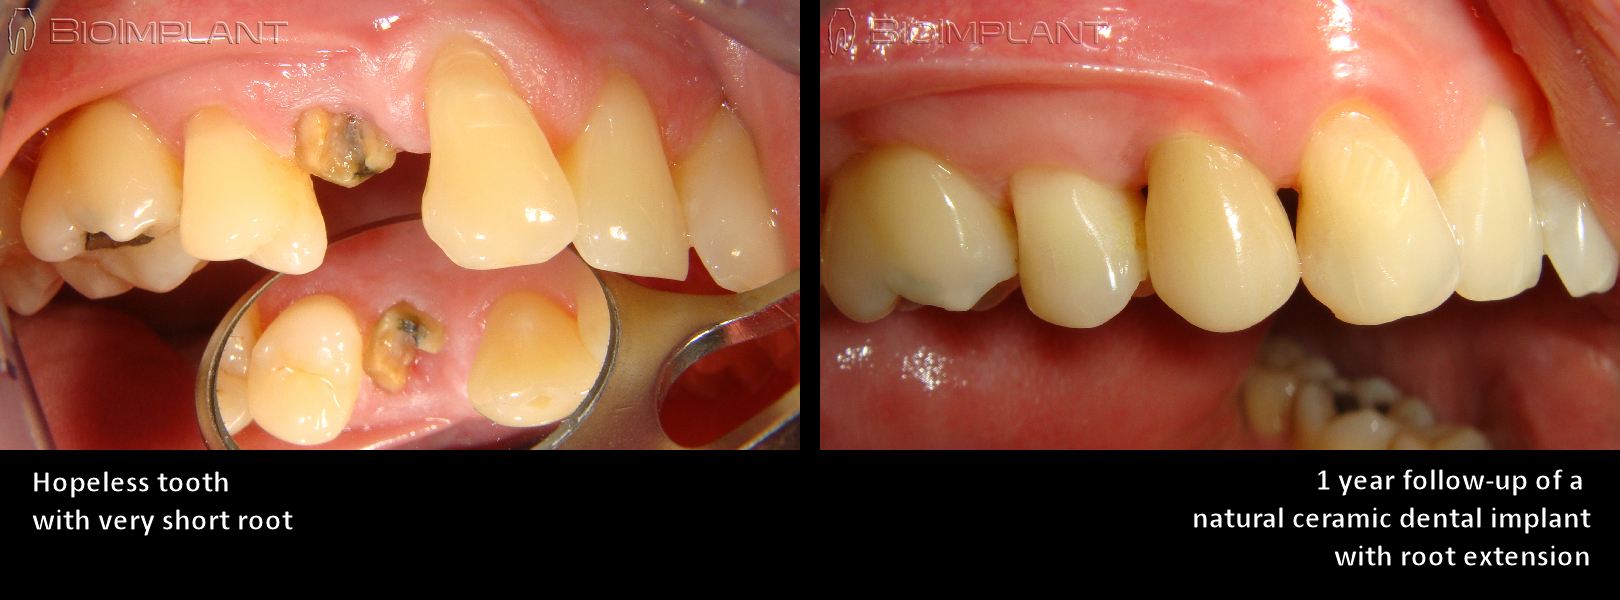 2 sofortimplantat keramisch immediate natural dental implant bioimplant